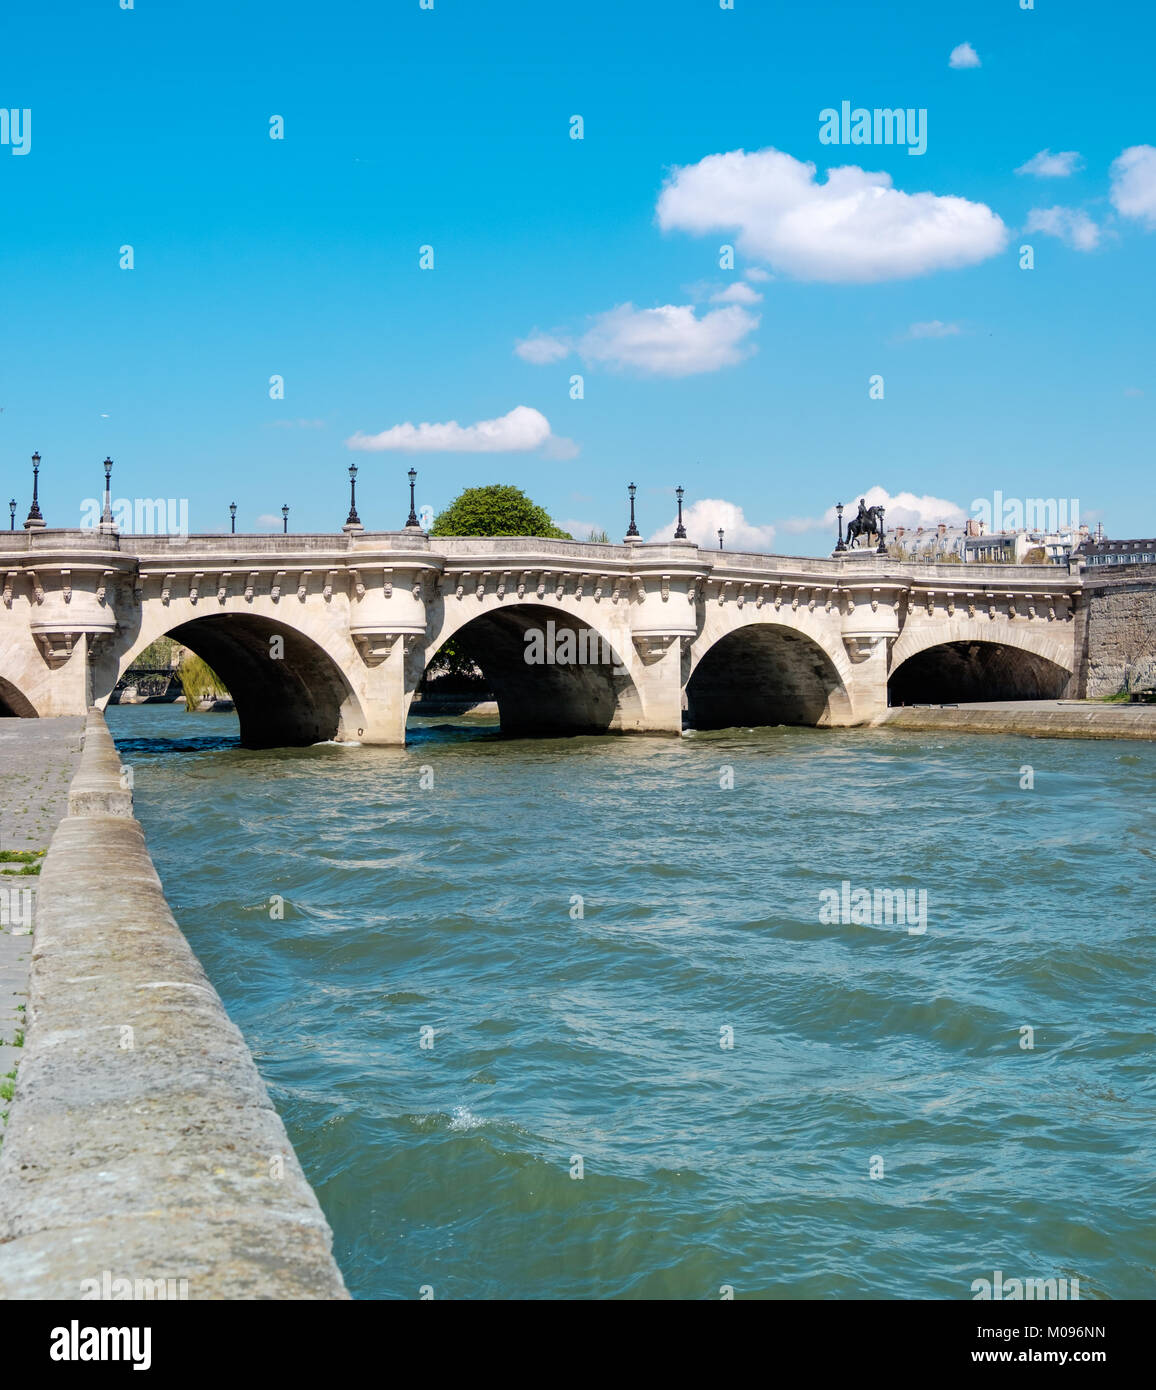 Pont Neuf bridge on Seine river in Paris, France, on a bright sunny day - Stock Image